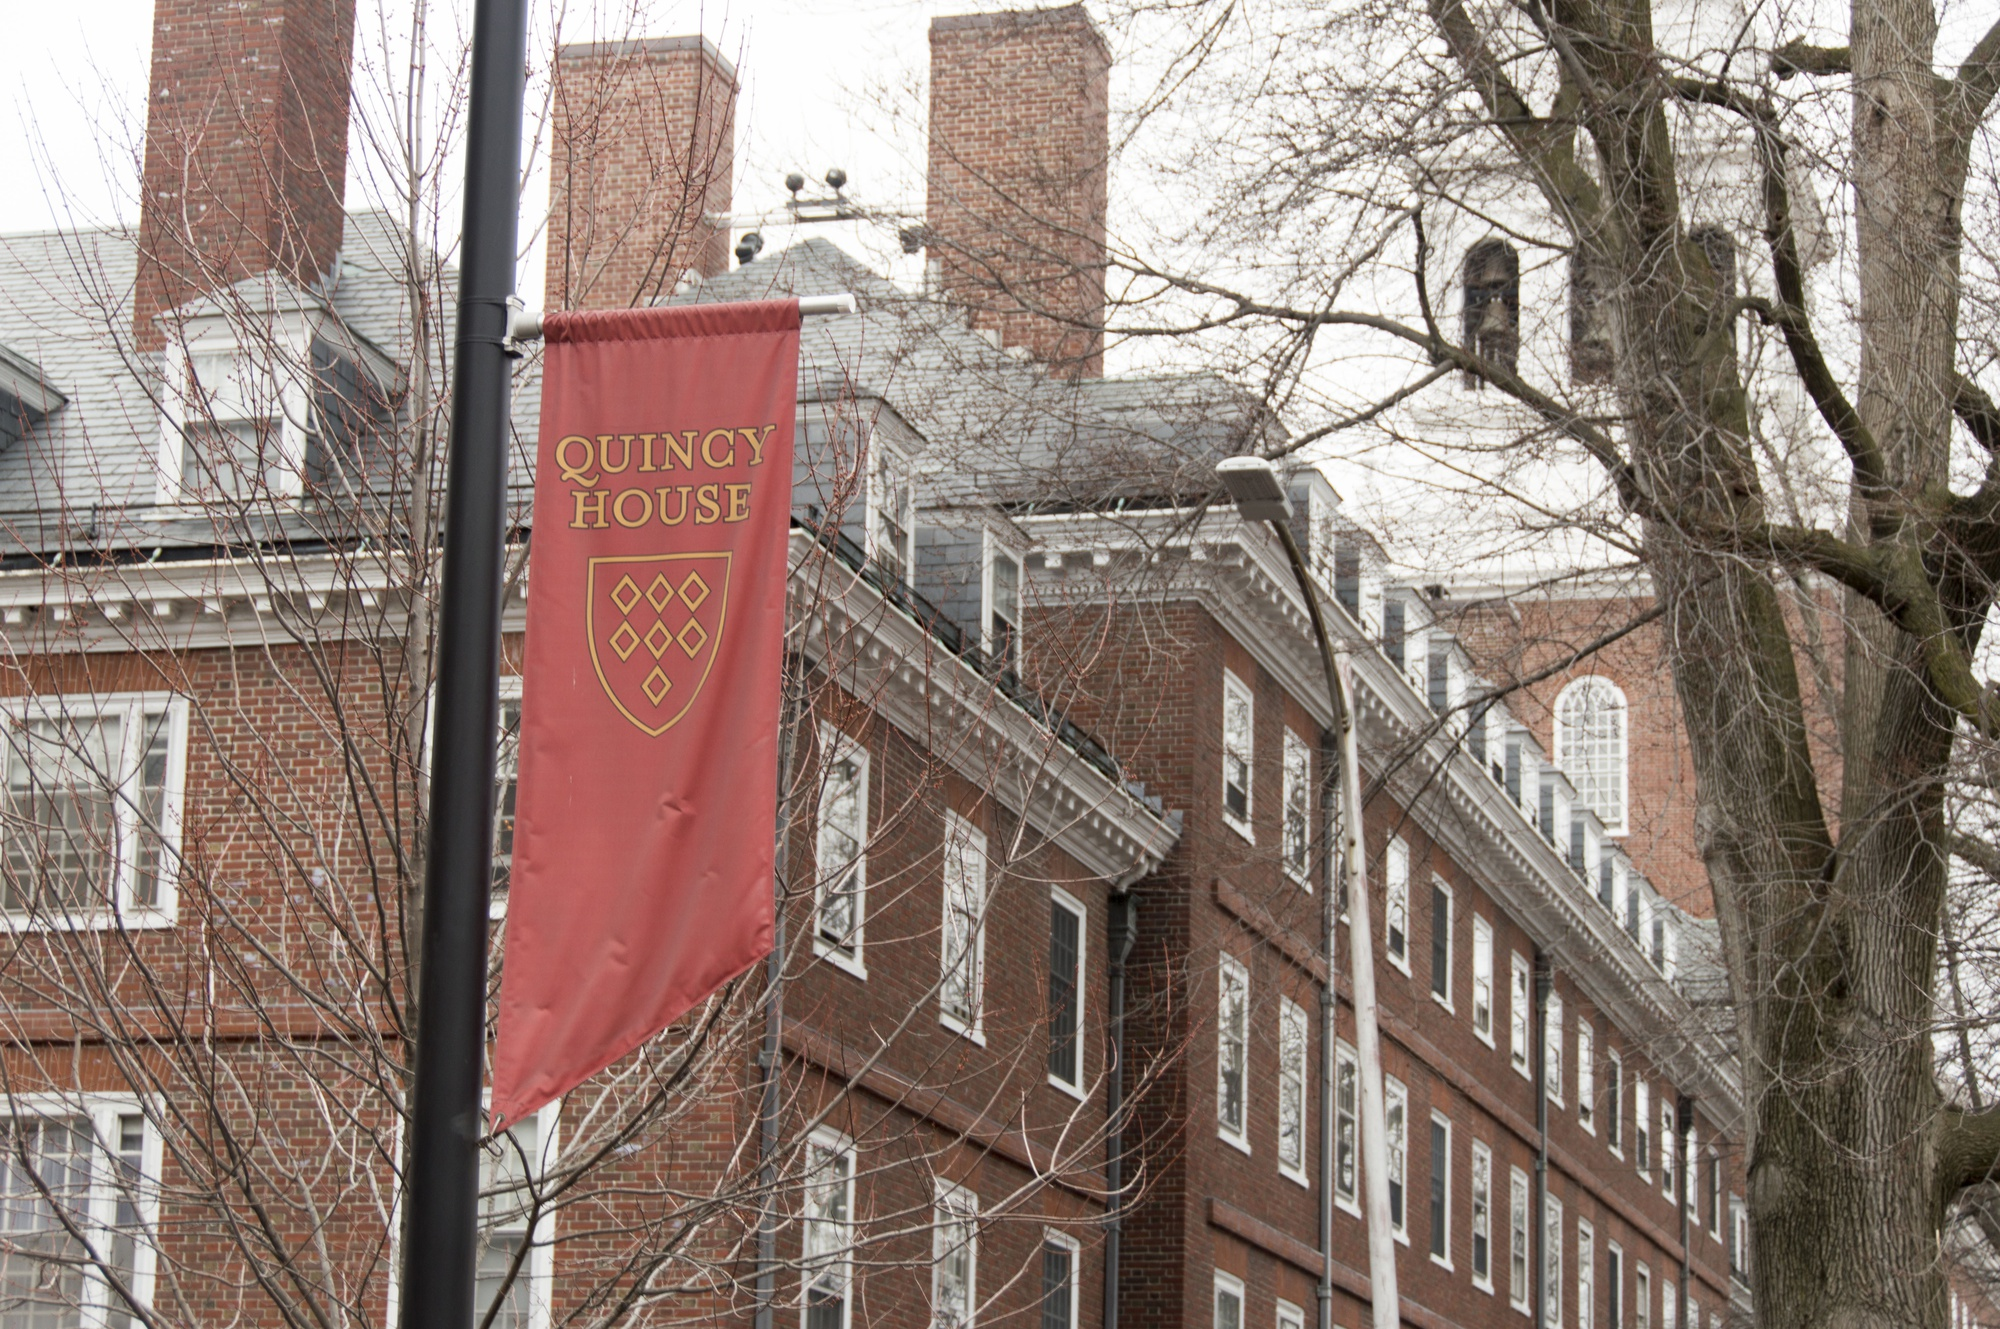 The exterior of Quincy Stone Hall.